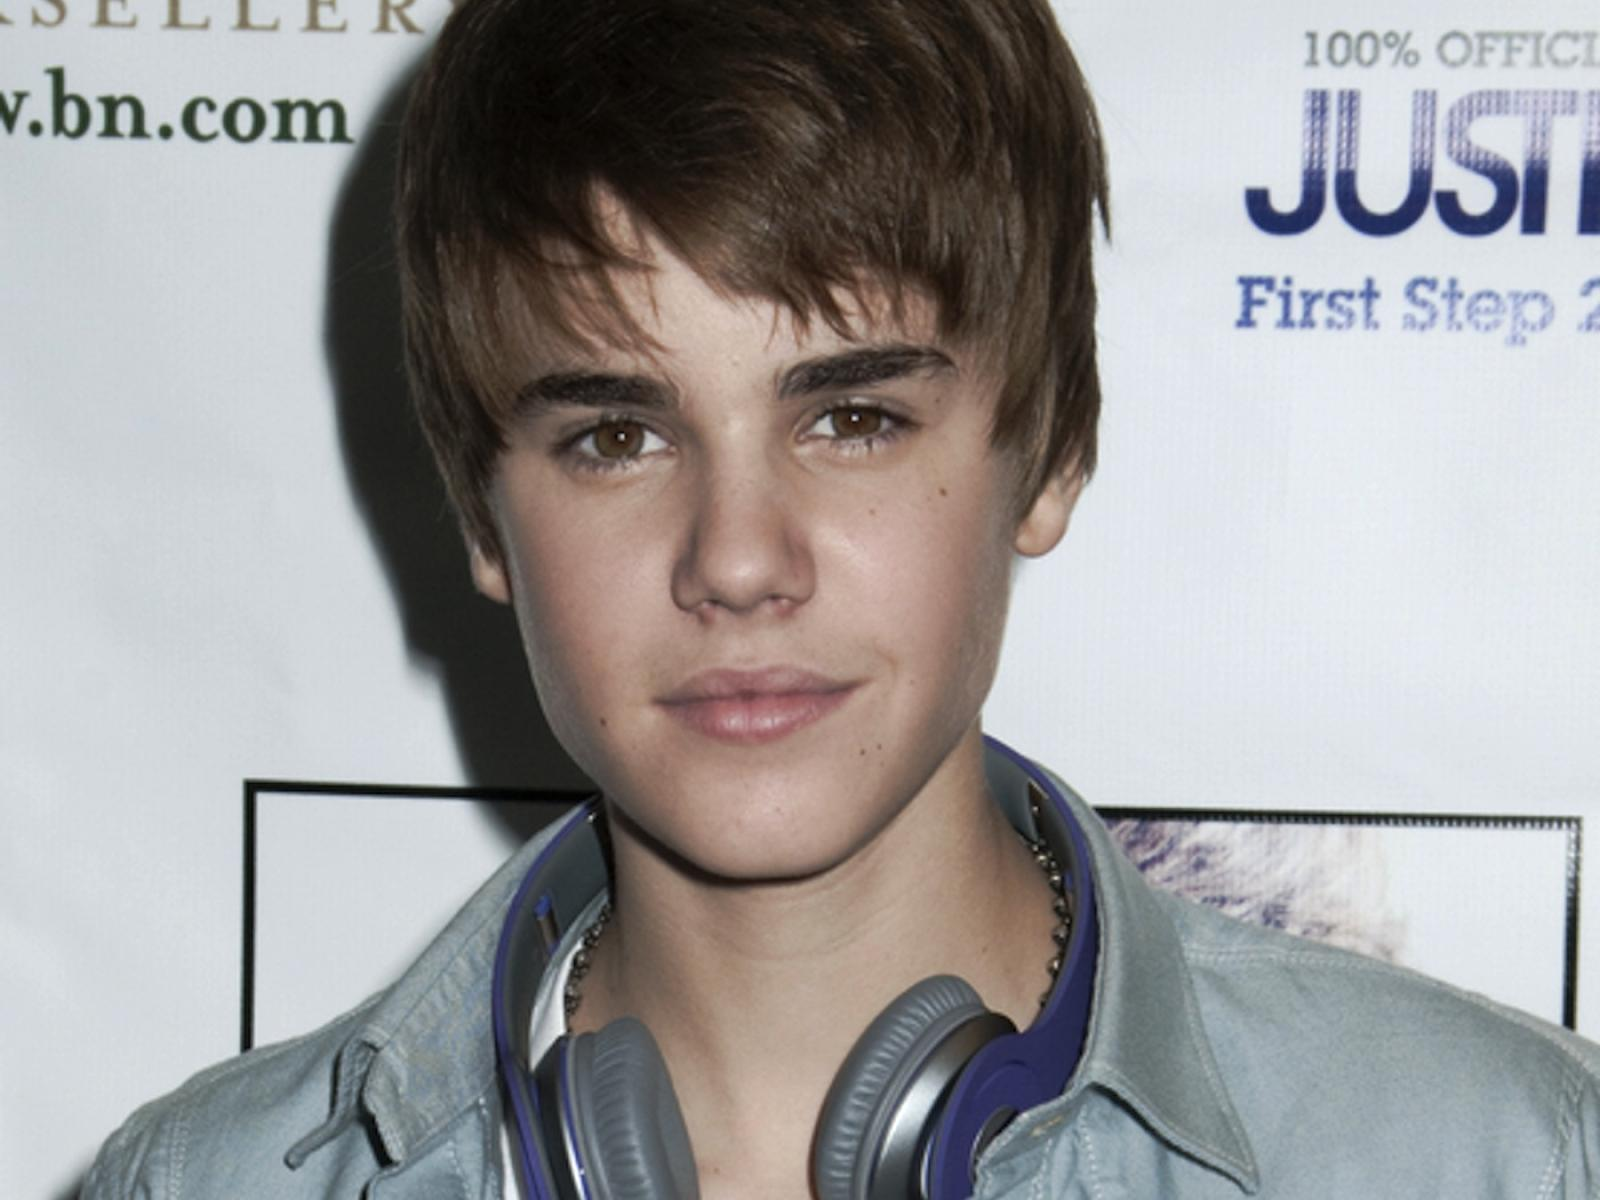 Cool Justin Bieber Wallpapers HD 58 18149 Image HD Wallpapers